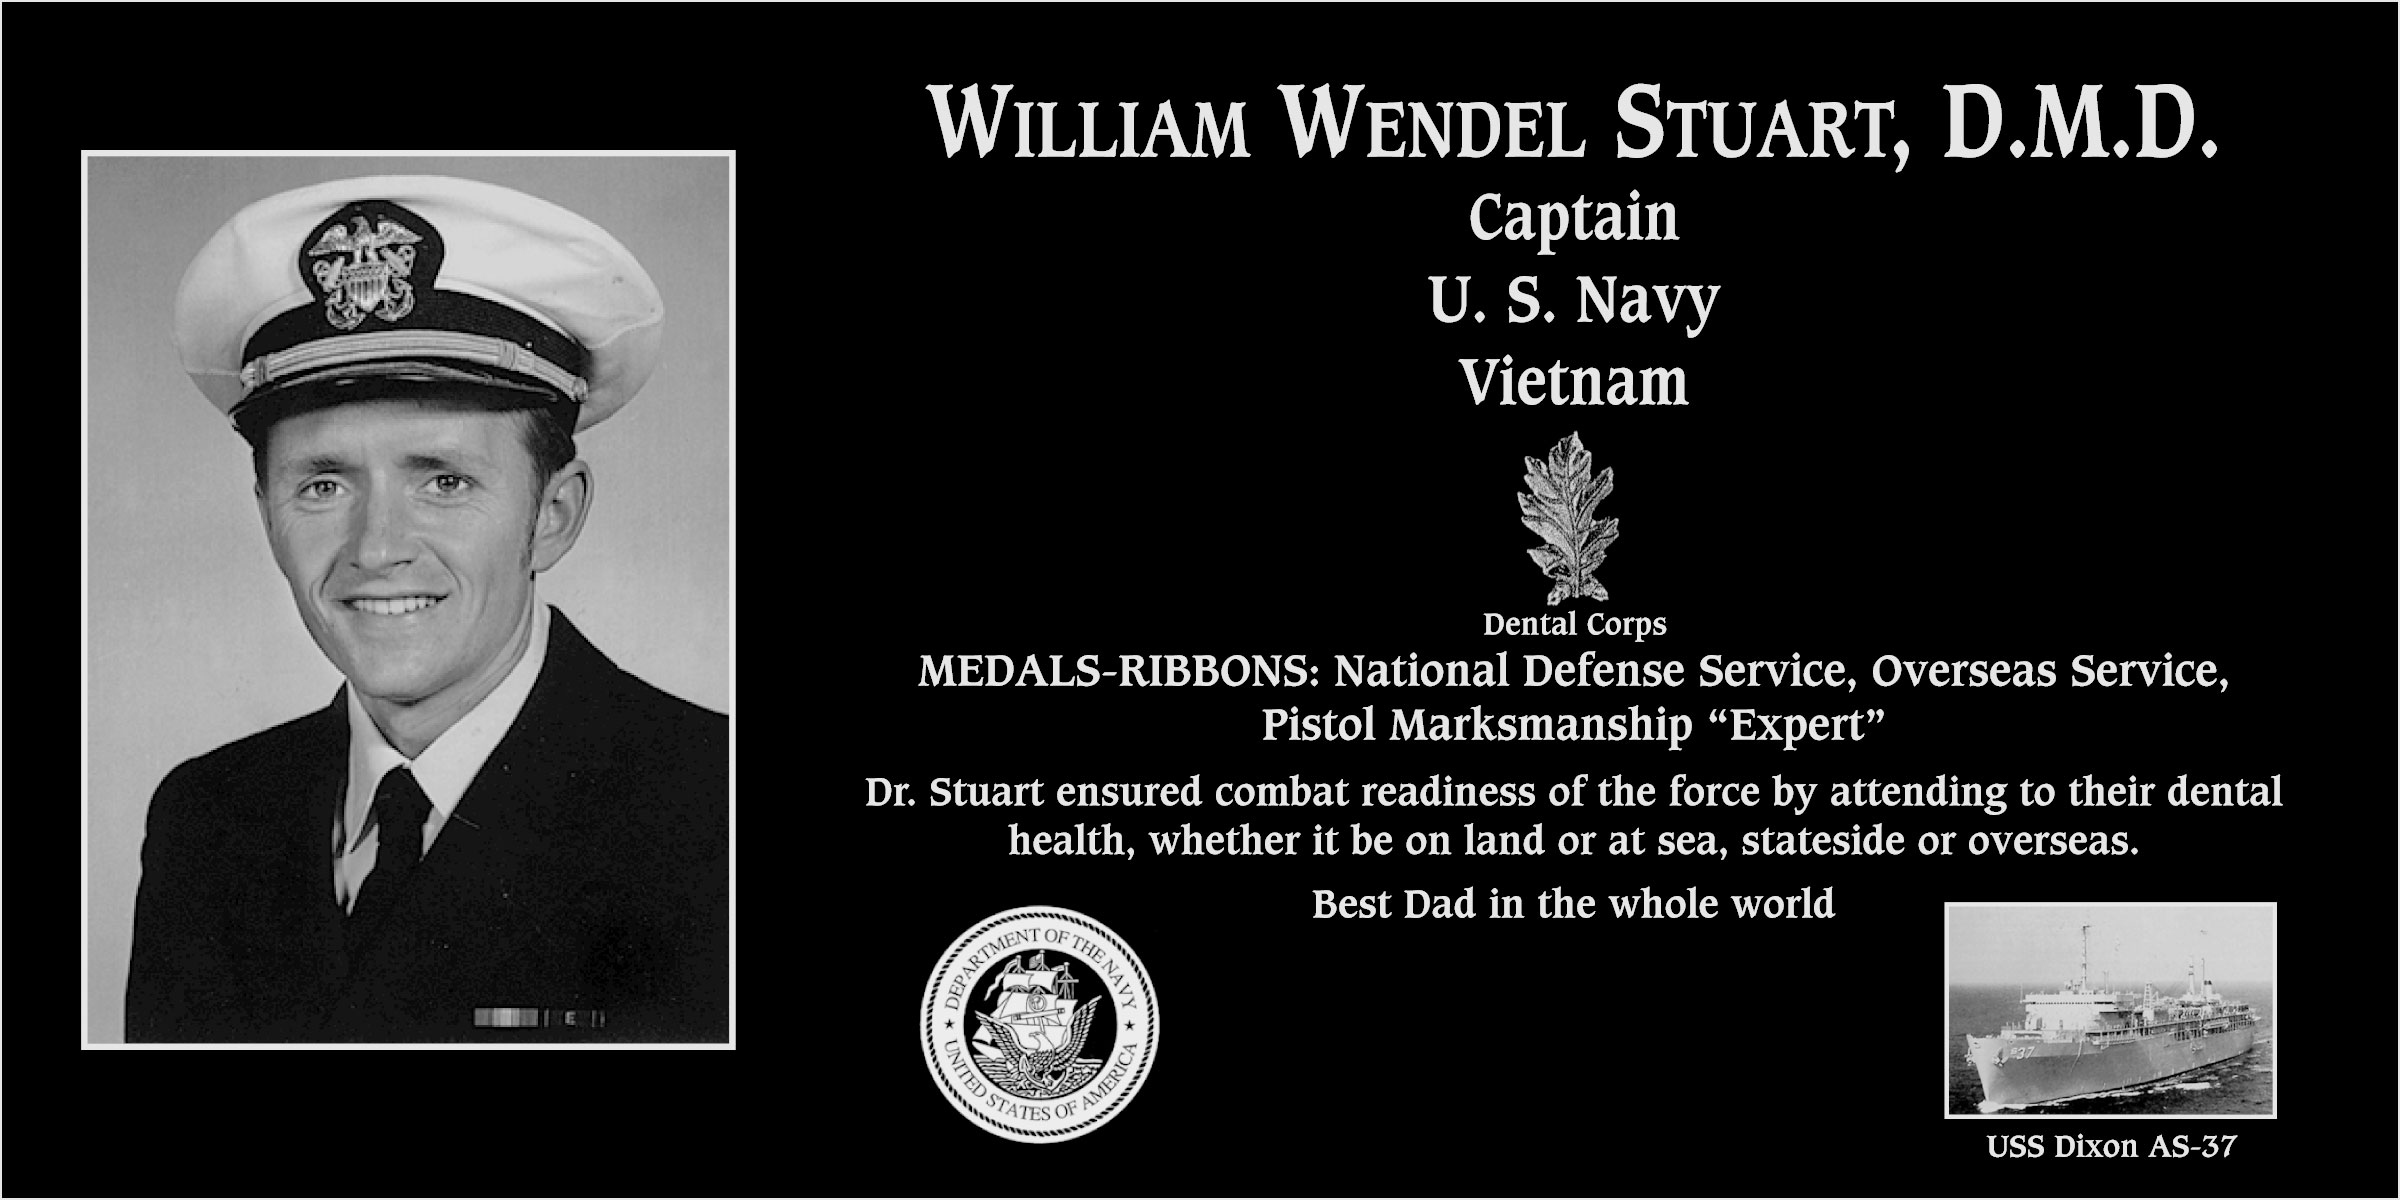 William Wendel Stuart, D.M.D.